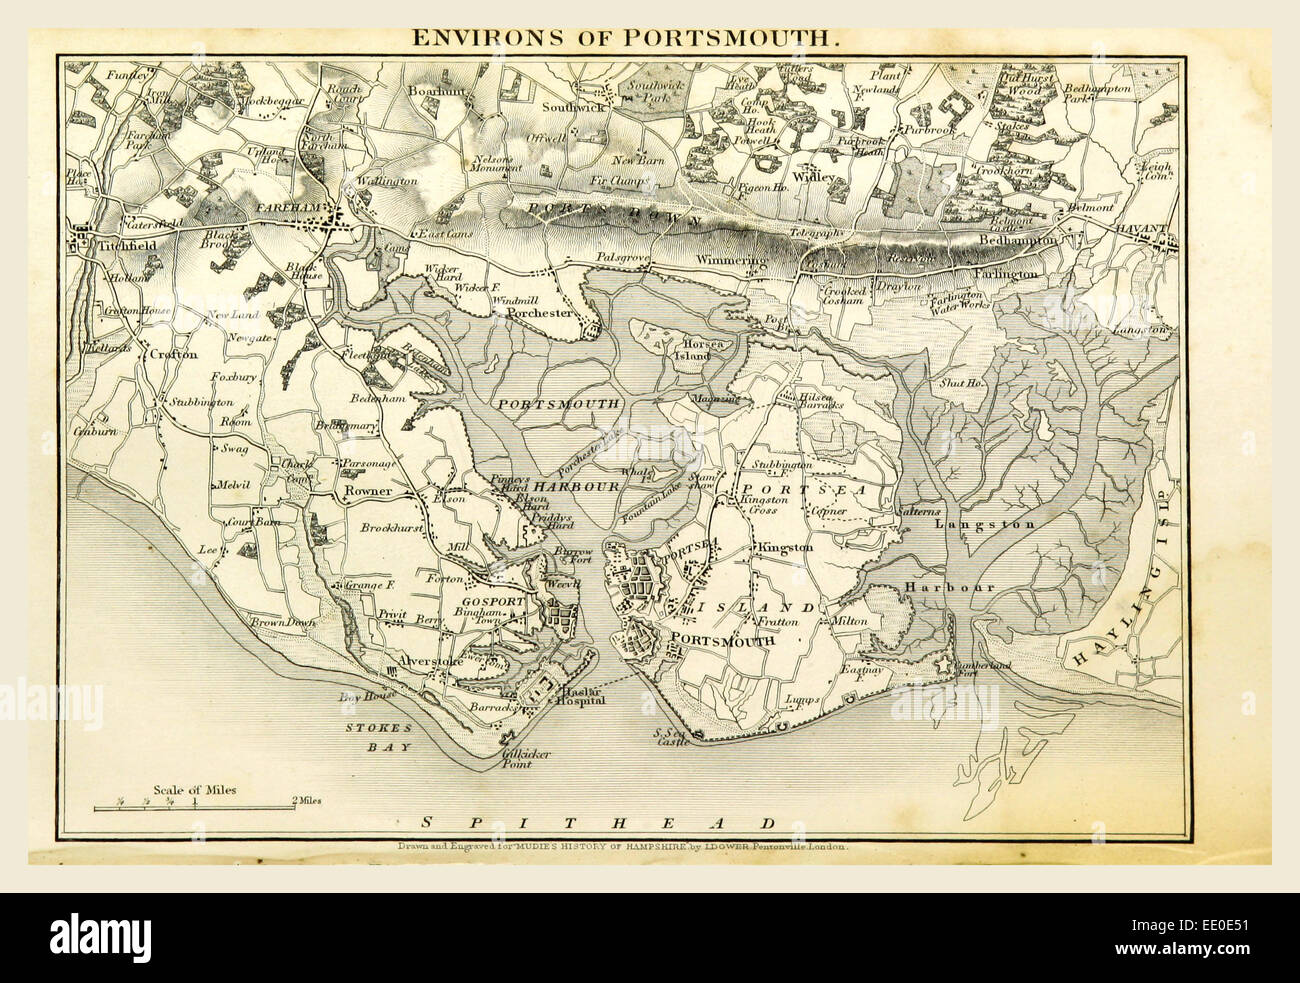 Portsmouth, Hampshire, its past and present condition and future prospects, 19th century engraving - Stock Image